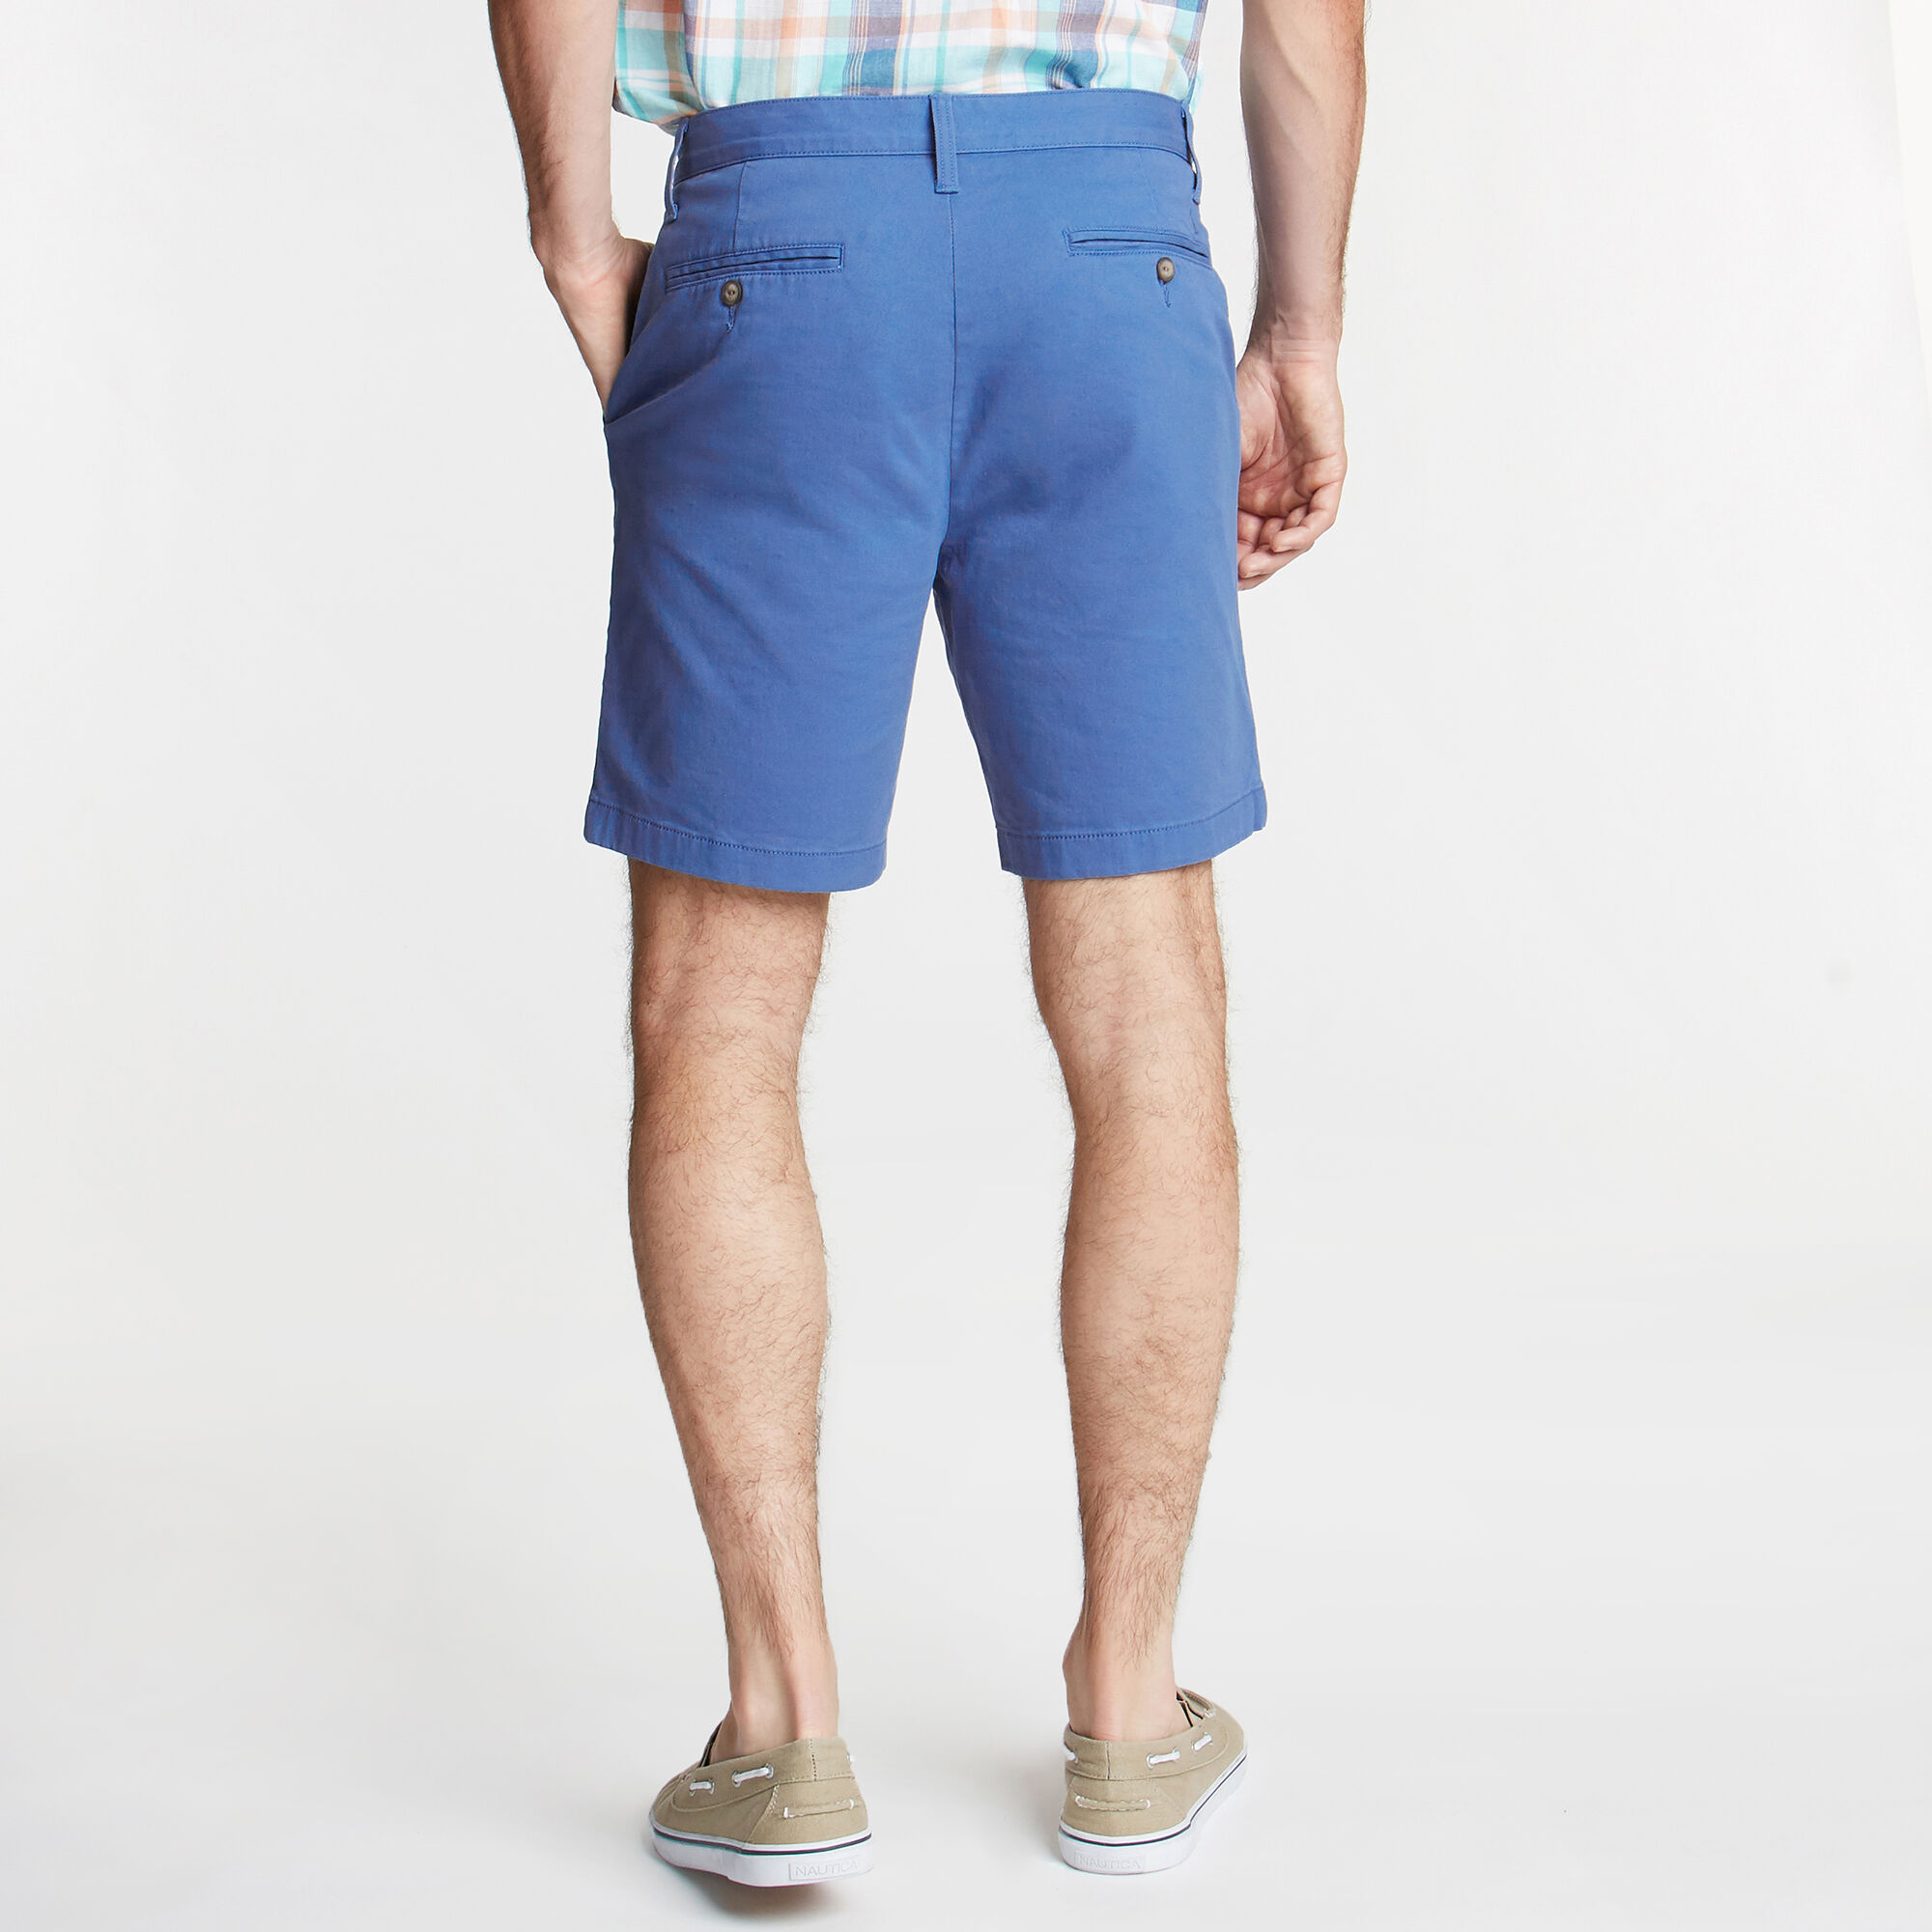 Nautica-Mens-8-5-034-Classic-Fit-Deck-Short-With-Stretch thumbnail 11